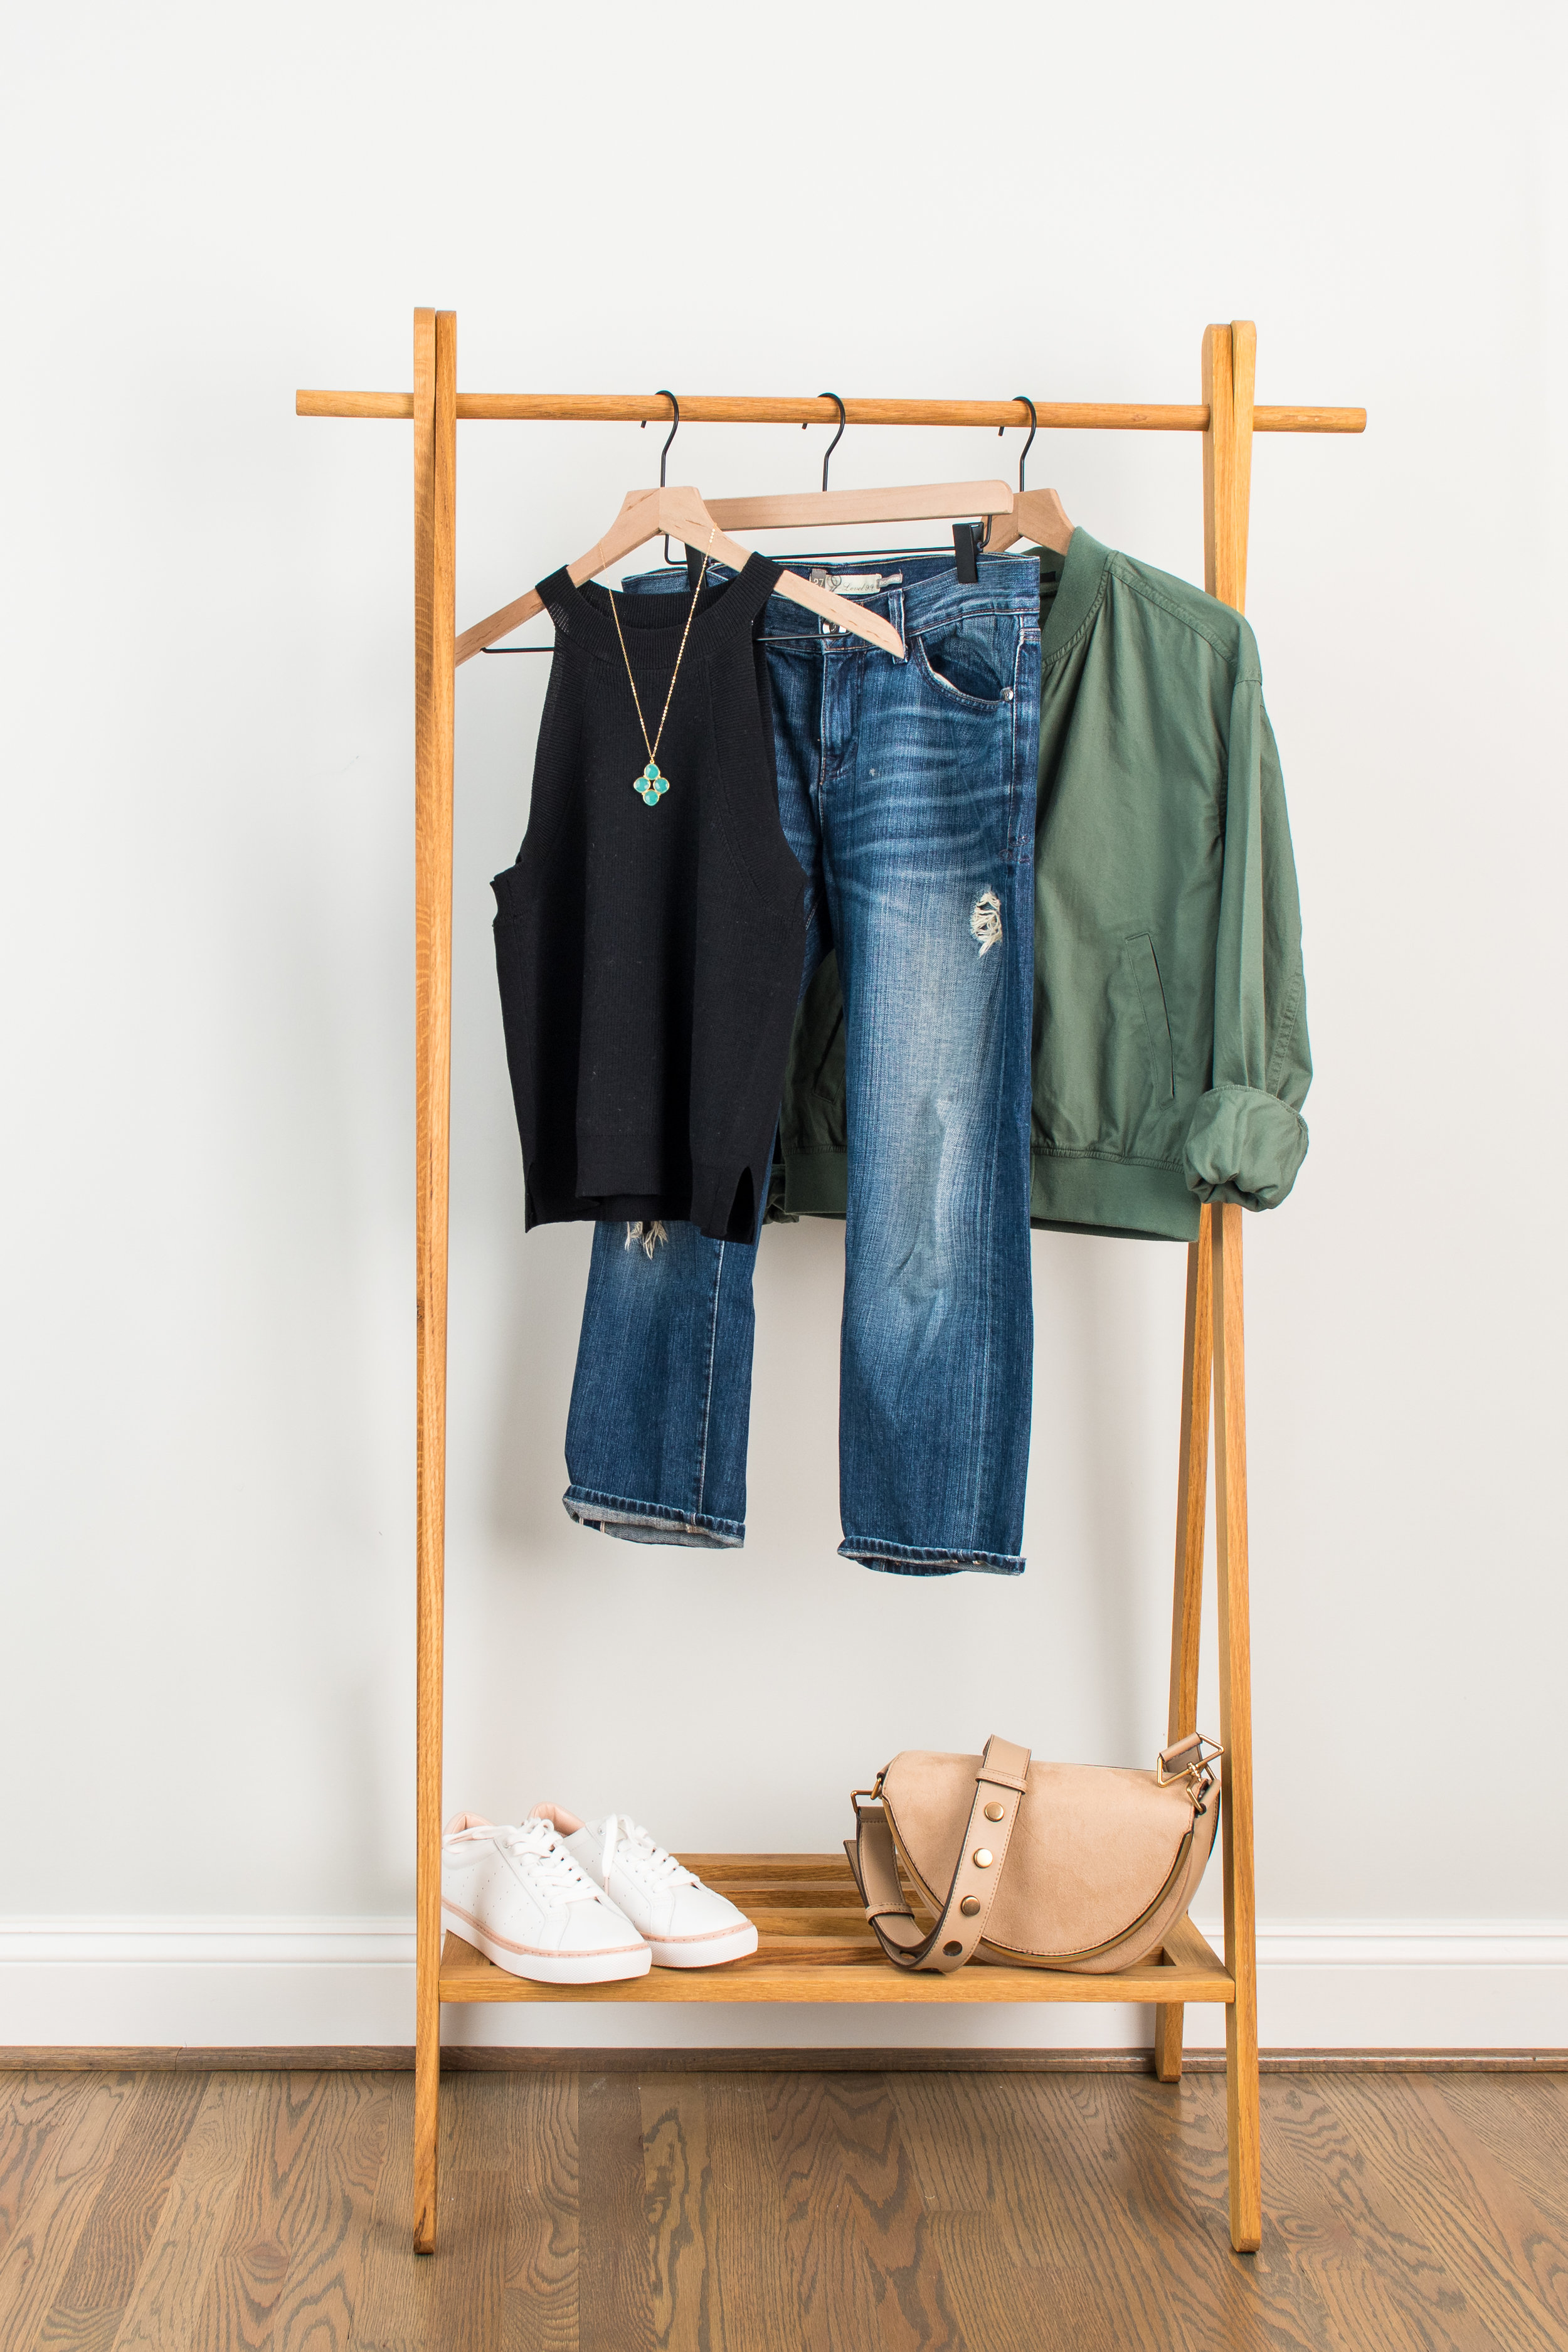 Keeping It Casual - Wear to: Sporting event or lunch with friendsKnit Tank: 1 // 2 // 3Distressed Jeans: 1 // 2 // 3Bomber Jacket: 1 // 2 // 3Sneakers: 1 // 2 // 3Necklace: 1 // 2 // 3Bag : 1 // 2 // 3